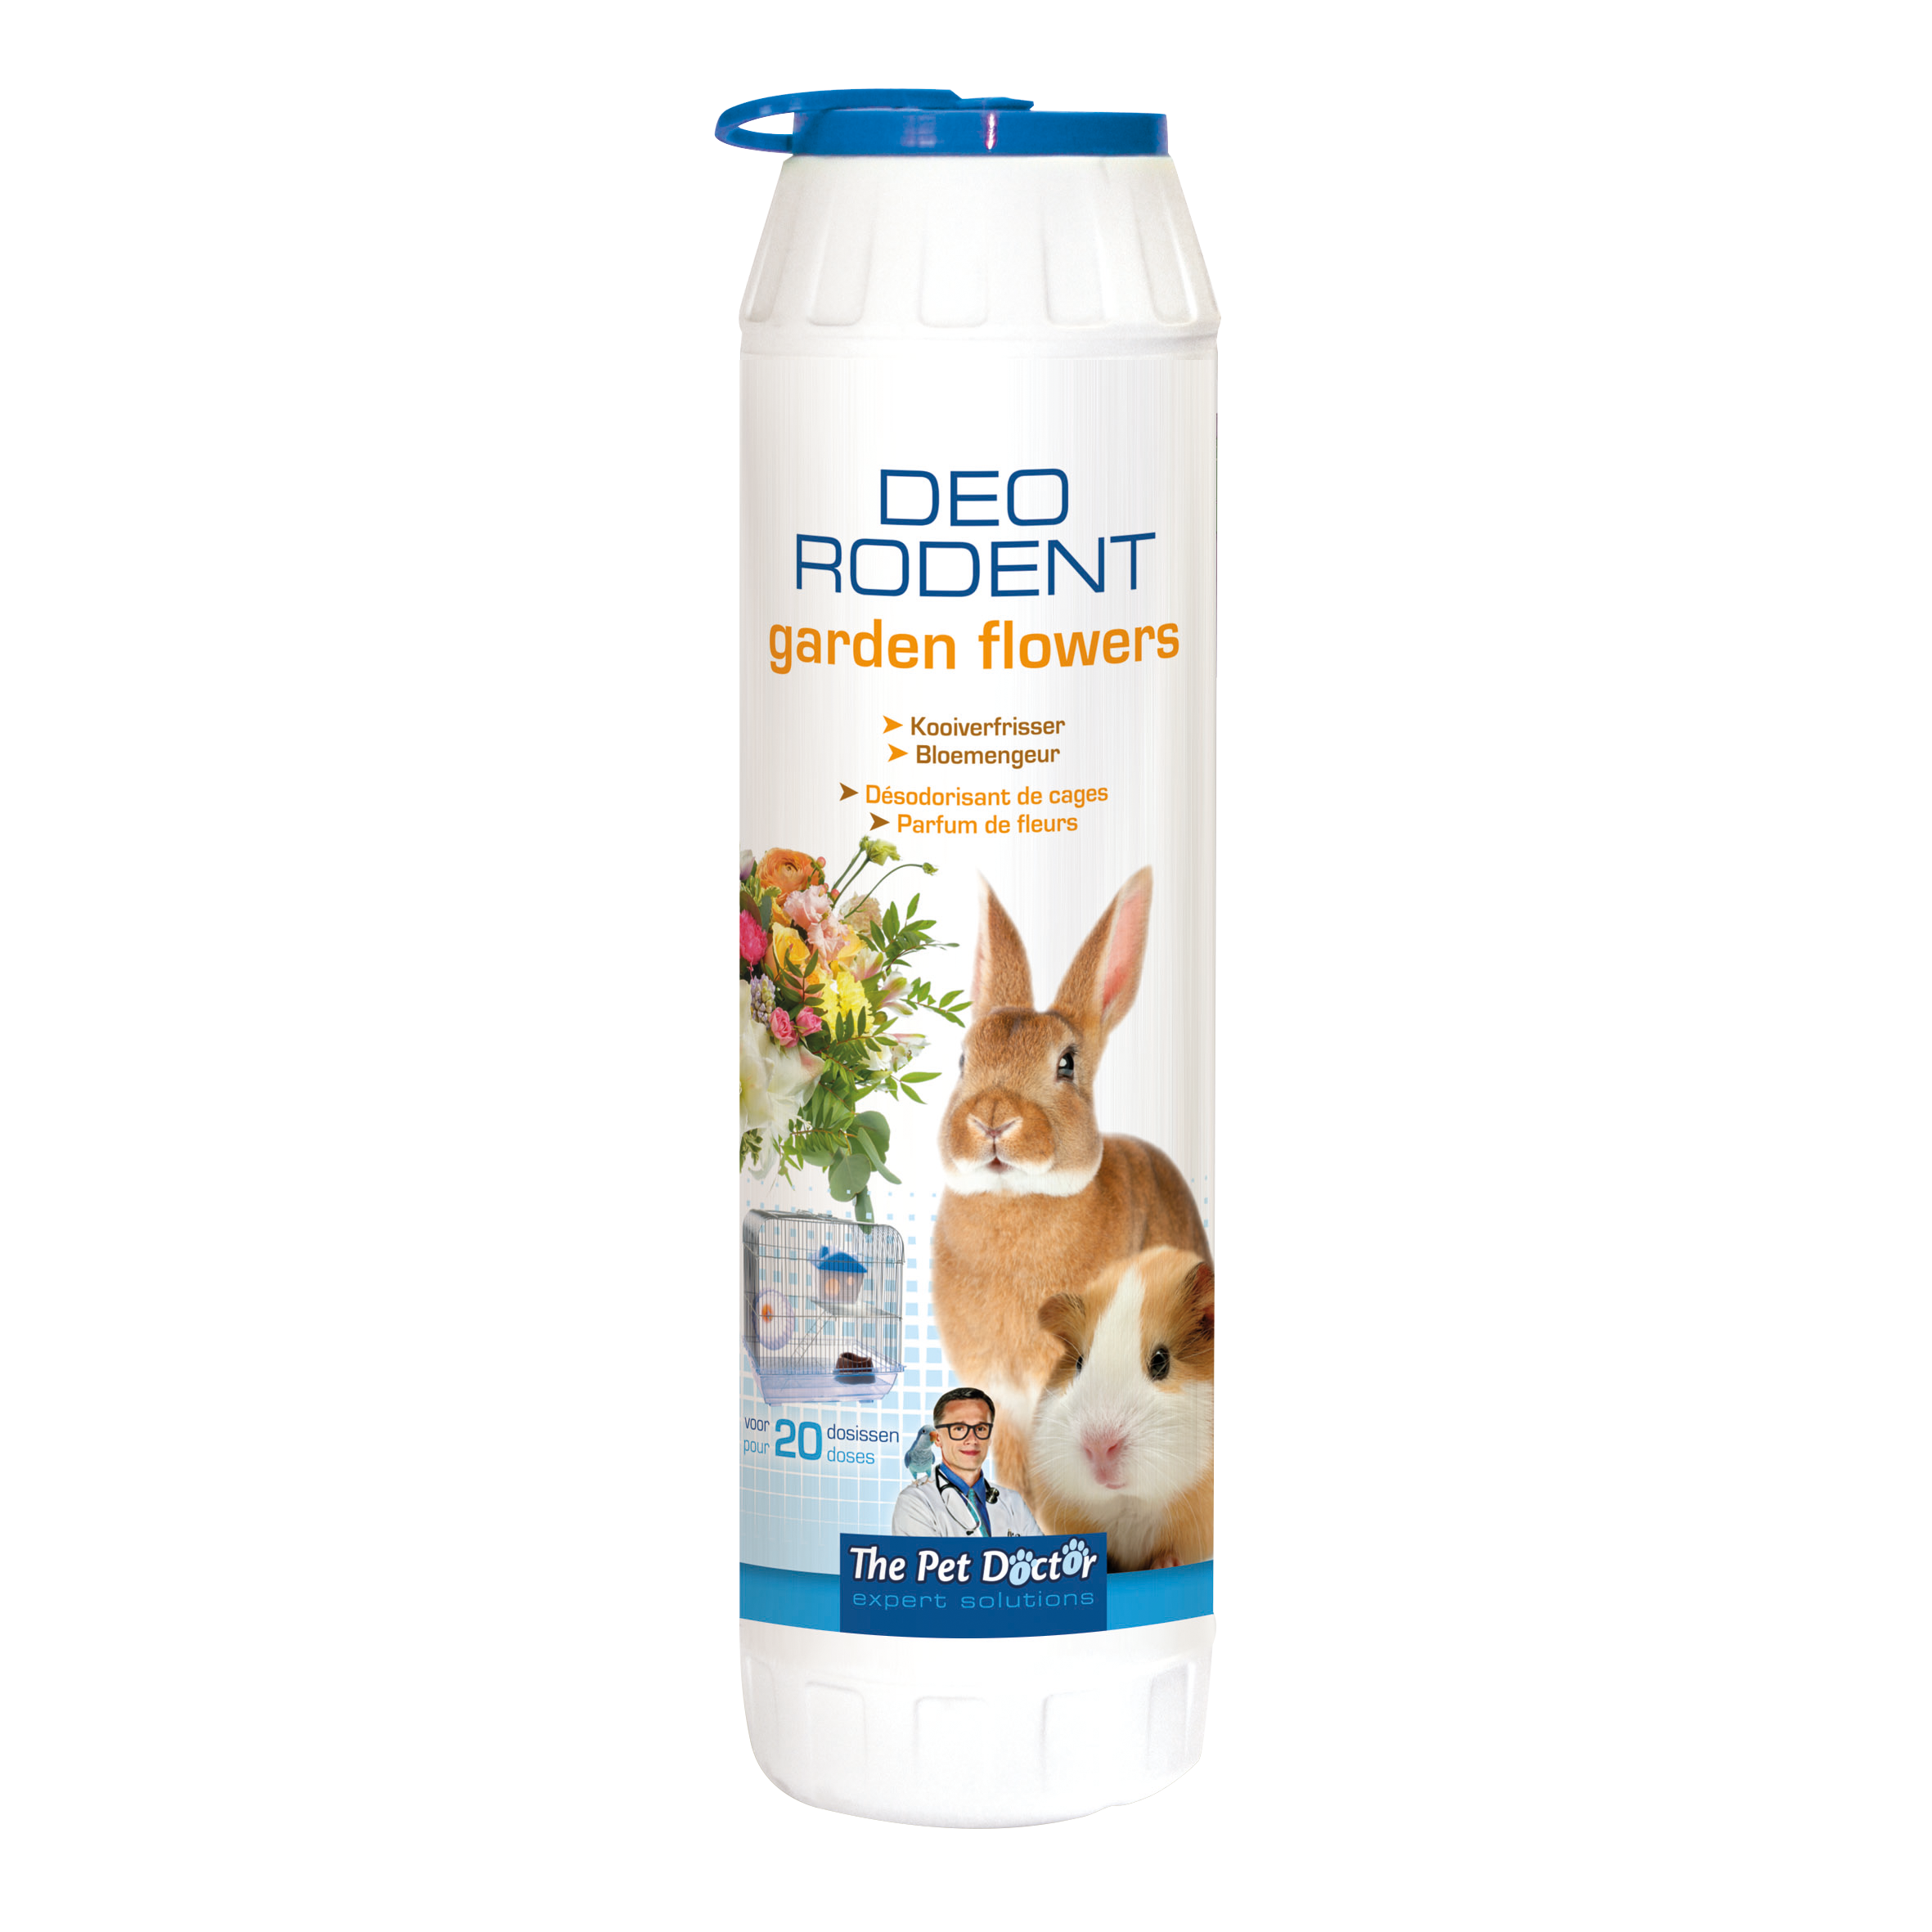 The Pet Doctor Deo Rodent Garden Flowers 750 g image